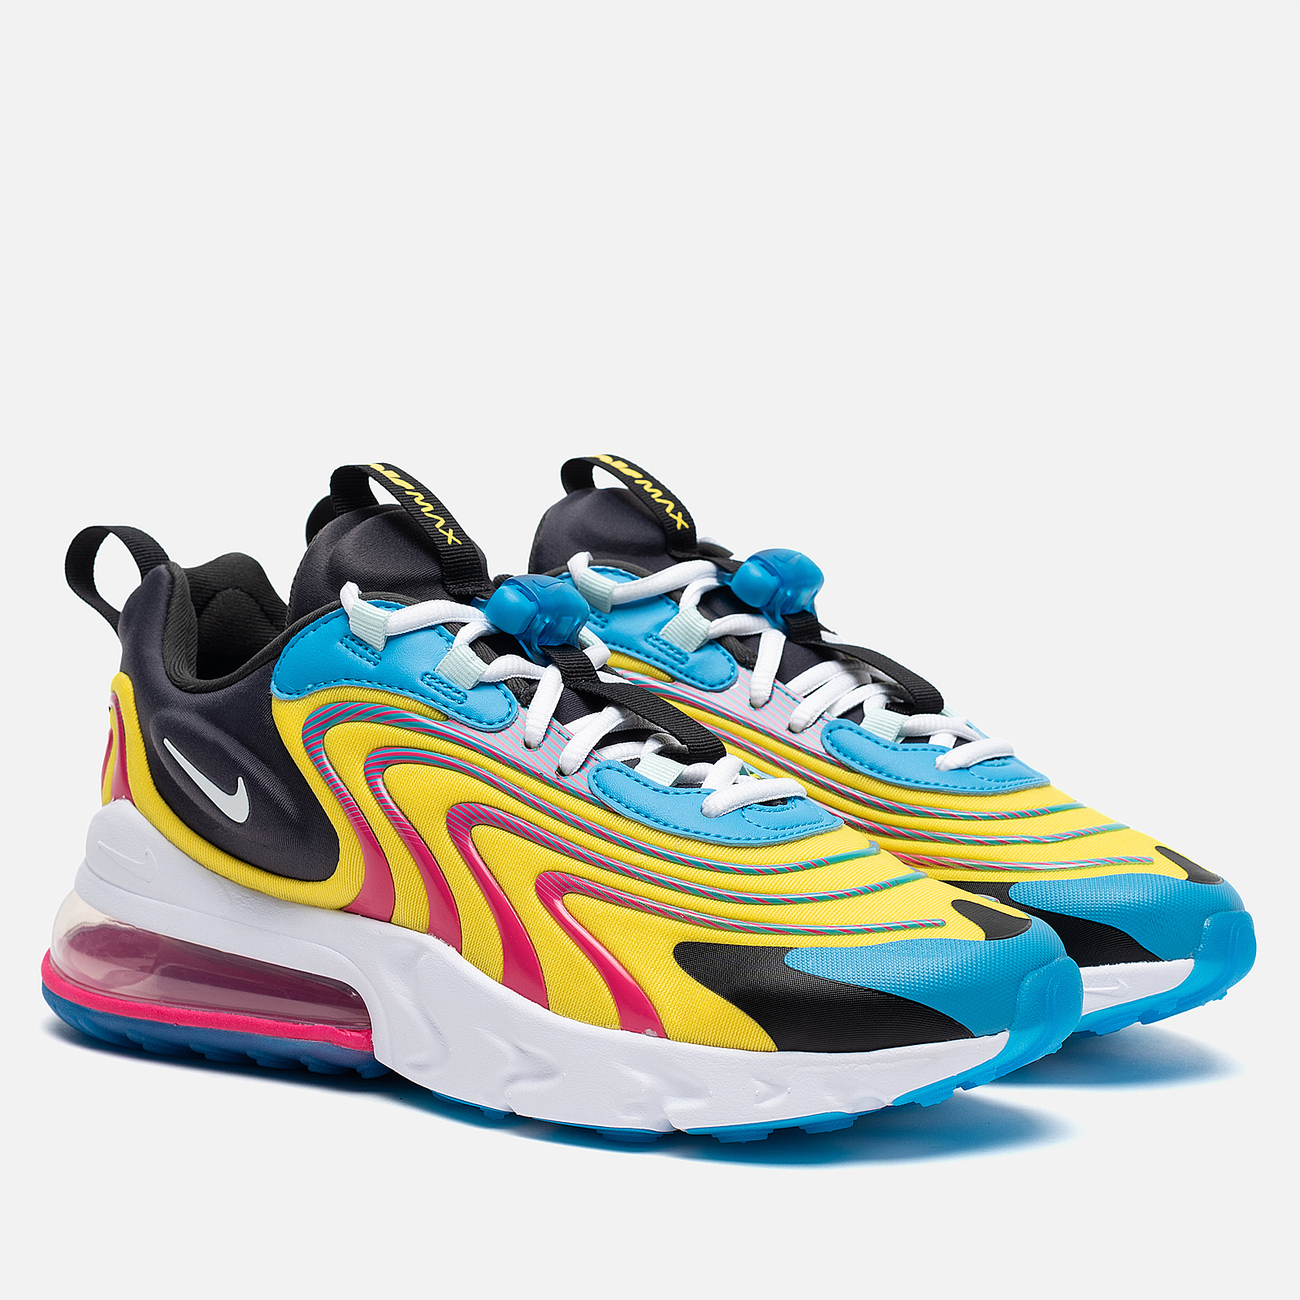 Мужские кроссовки Nike Air Max 270 React ENG Laser Blue/White/Anthracite/Watermelon